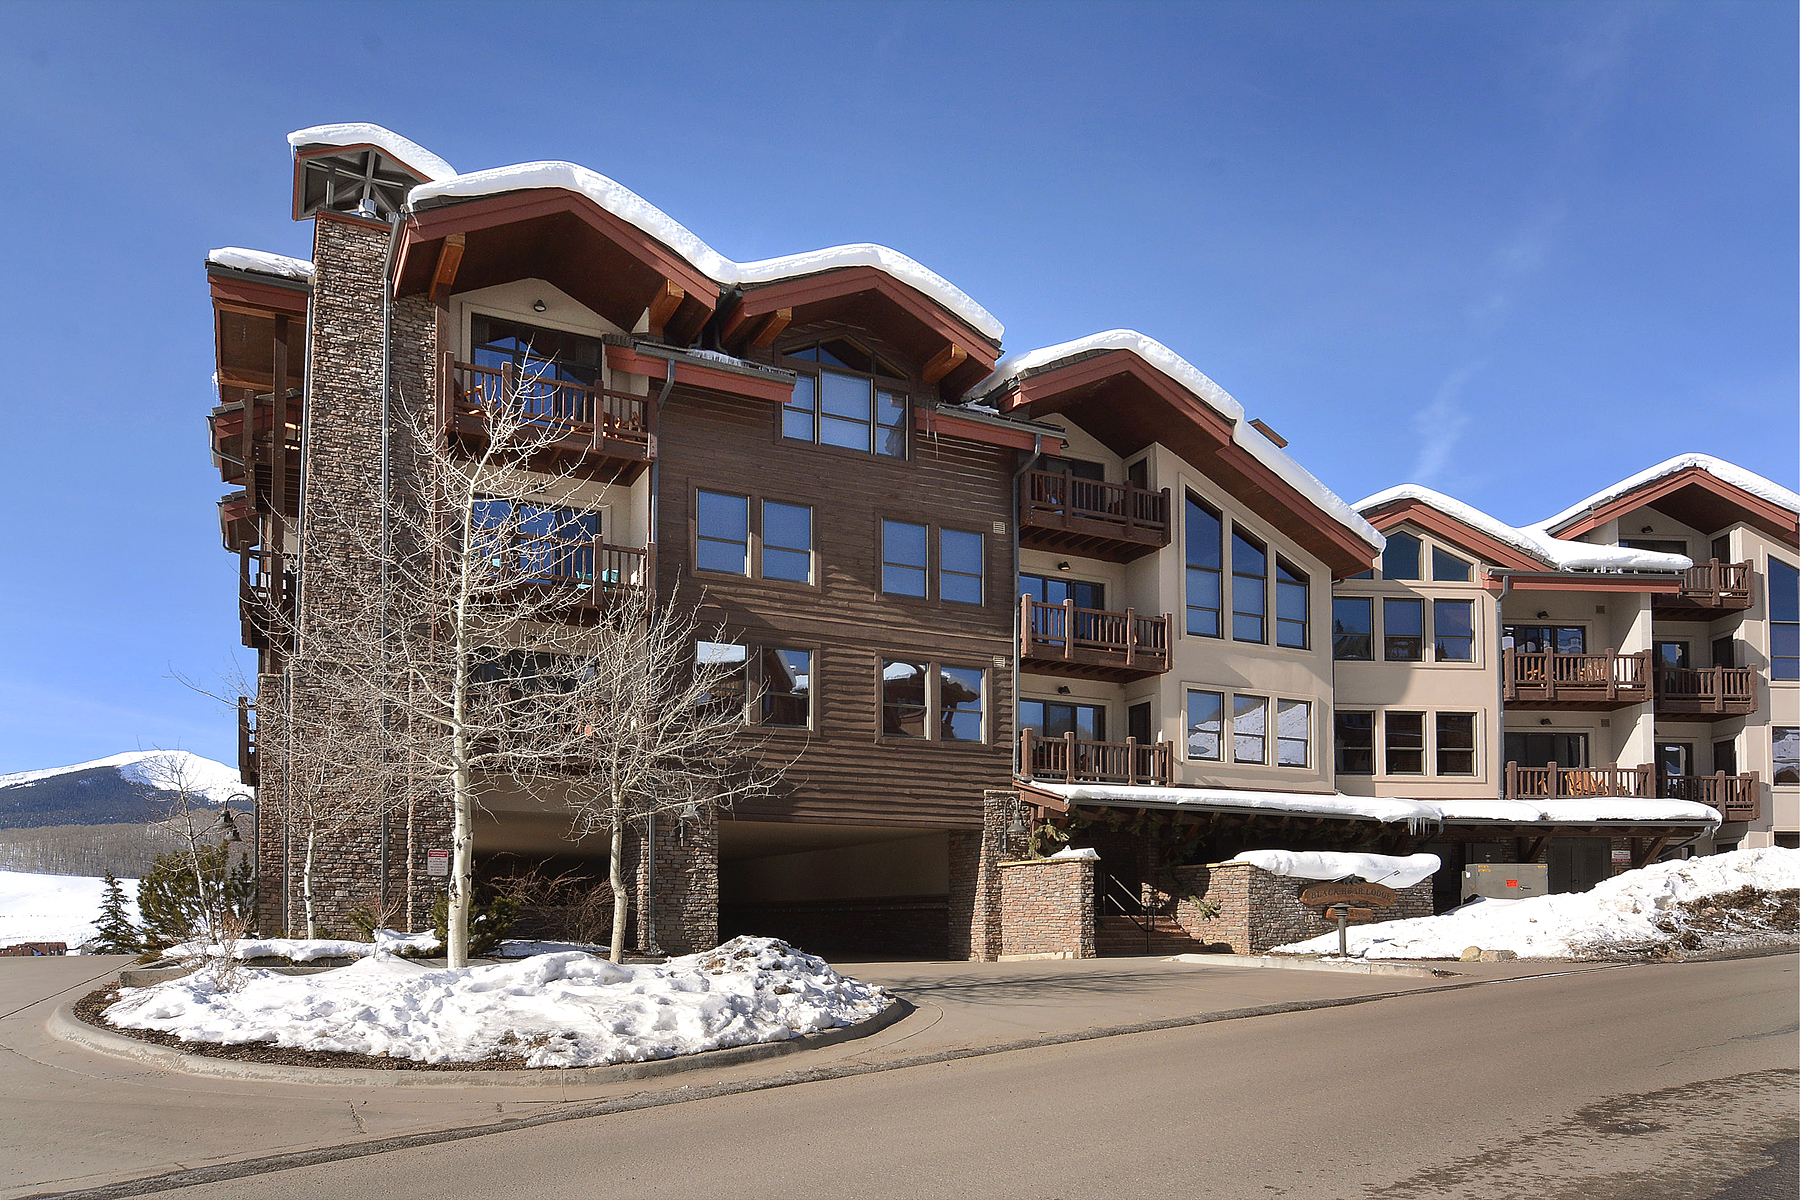 Copropriété pour l Vente à Walk to West Wall Lift 9 Hunter Hill Road Unit 204 Mount Crested Butte, Colorado, 81225 États-Unis